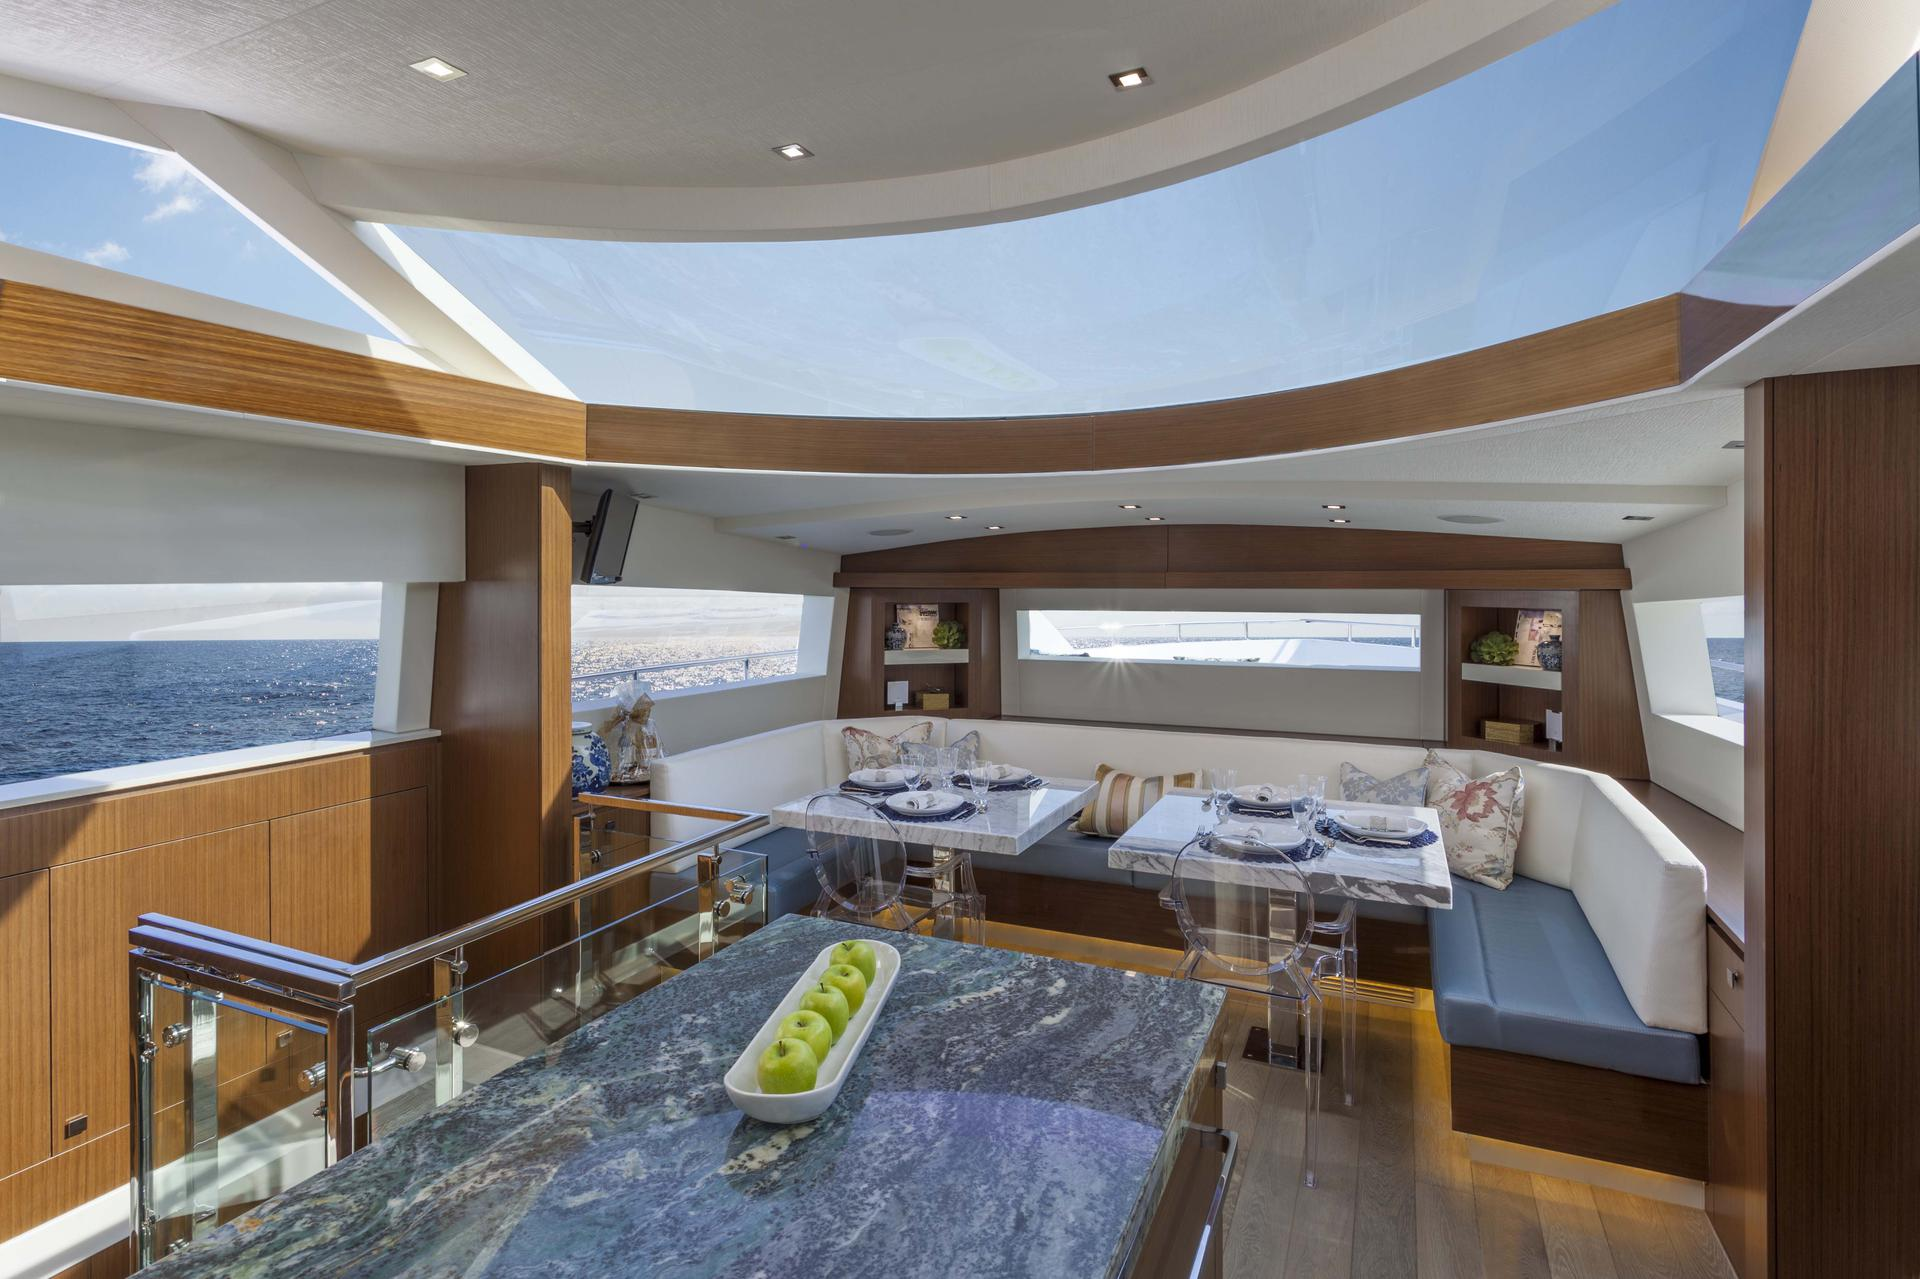 Hatteras M75 Panacera galley